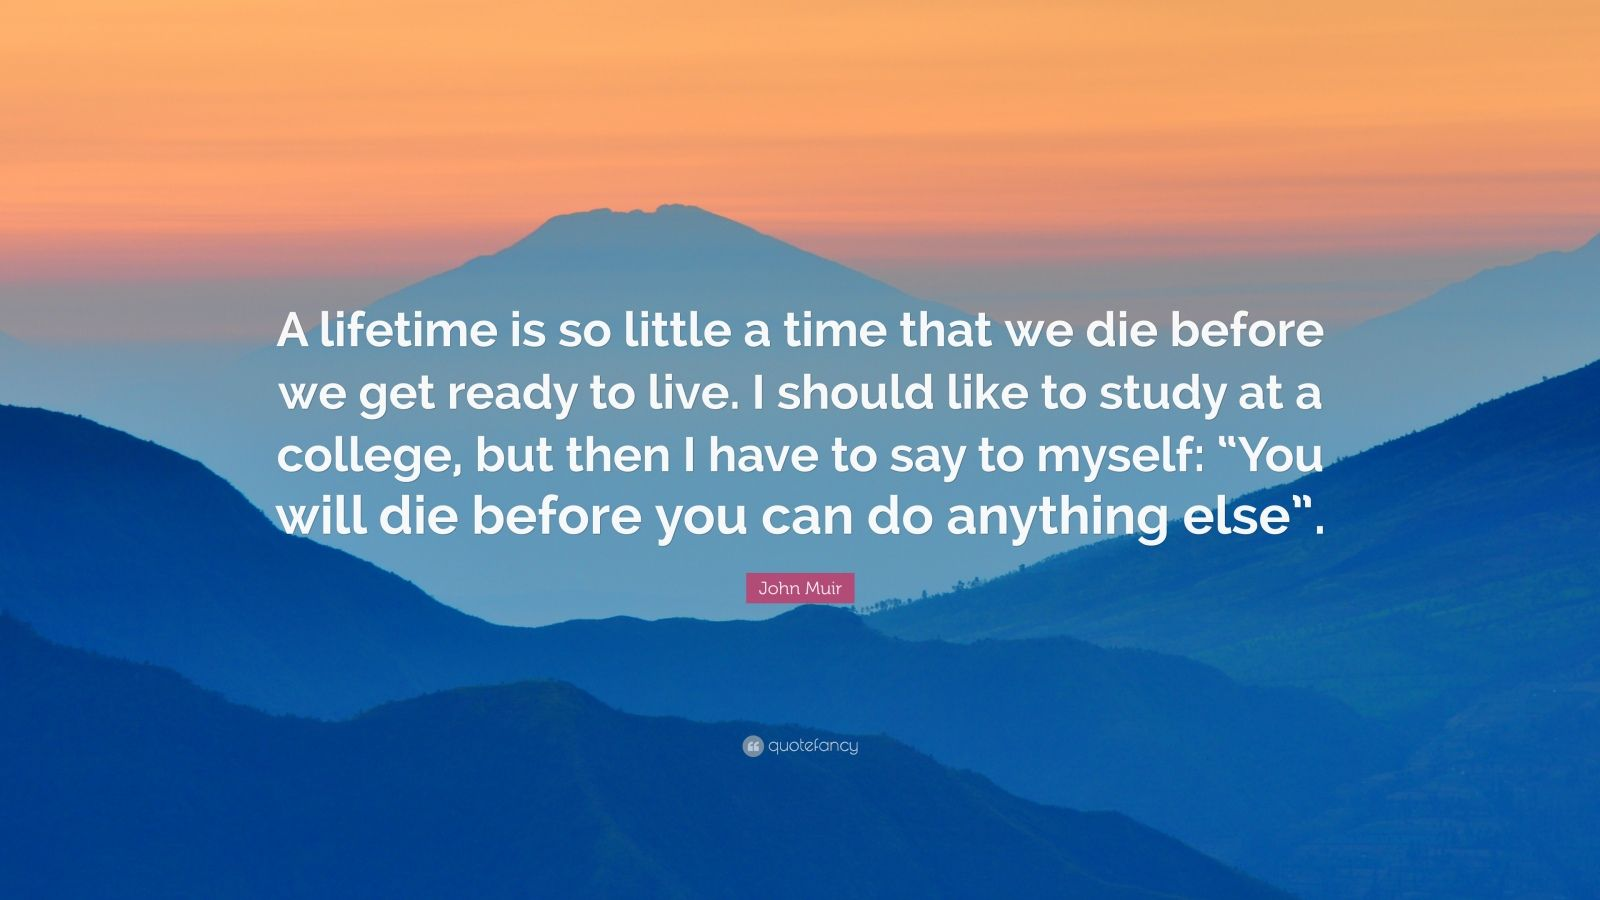 """John Muir Quote: """"A lifetime is so little a time that we die before we get ready to live. I should like to study at a college, but then I have to say to myself: """"You will die before you can do anything else""""."""""""